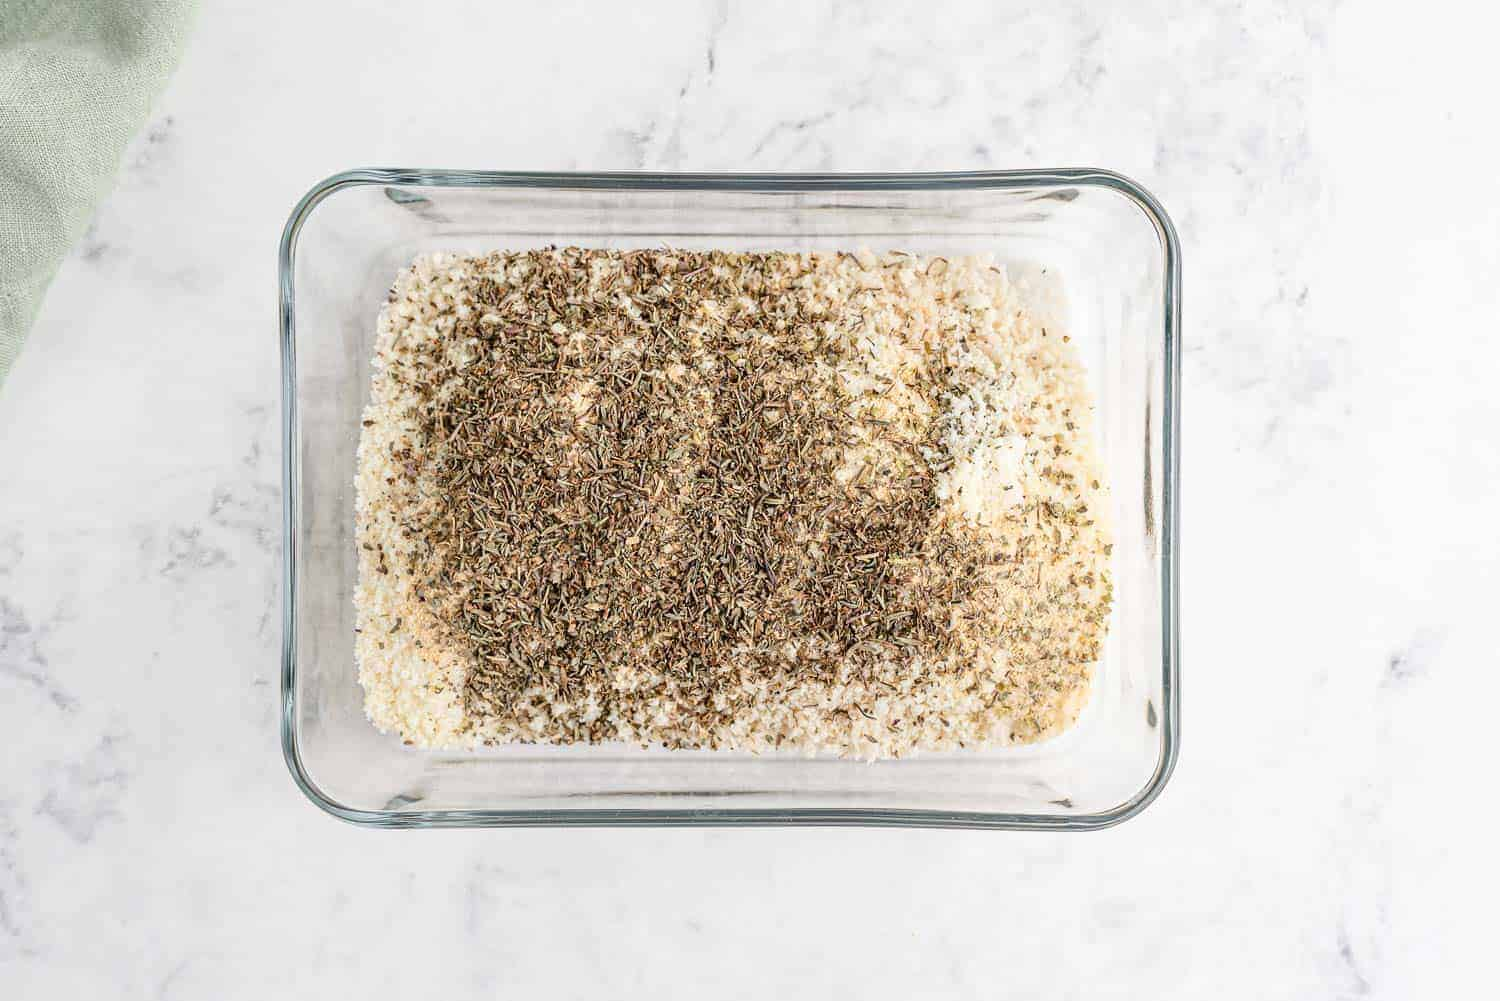 Panko bread crumbs mixed with dried herbs.